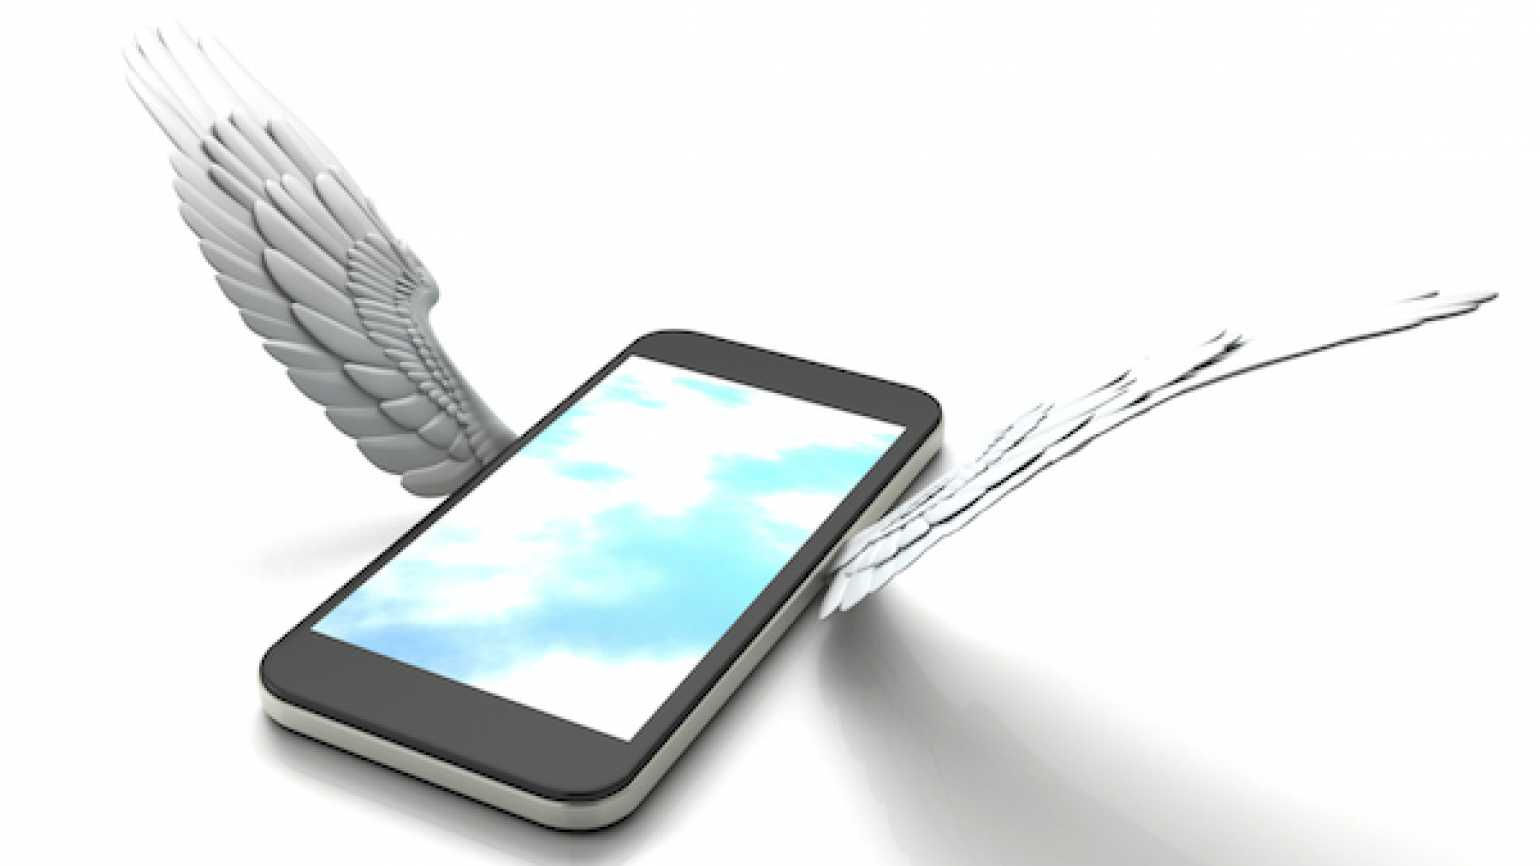 Calling all Earth Angels! Angels on Earth editor Colleen Hughes is in a mild panic over a forgotten cell phone.